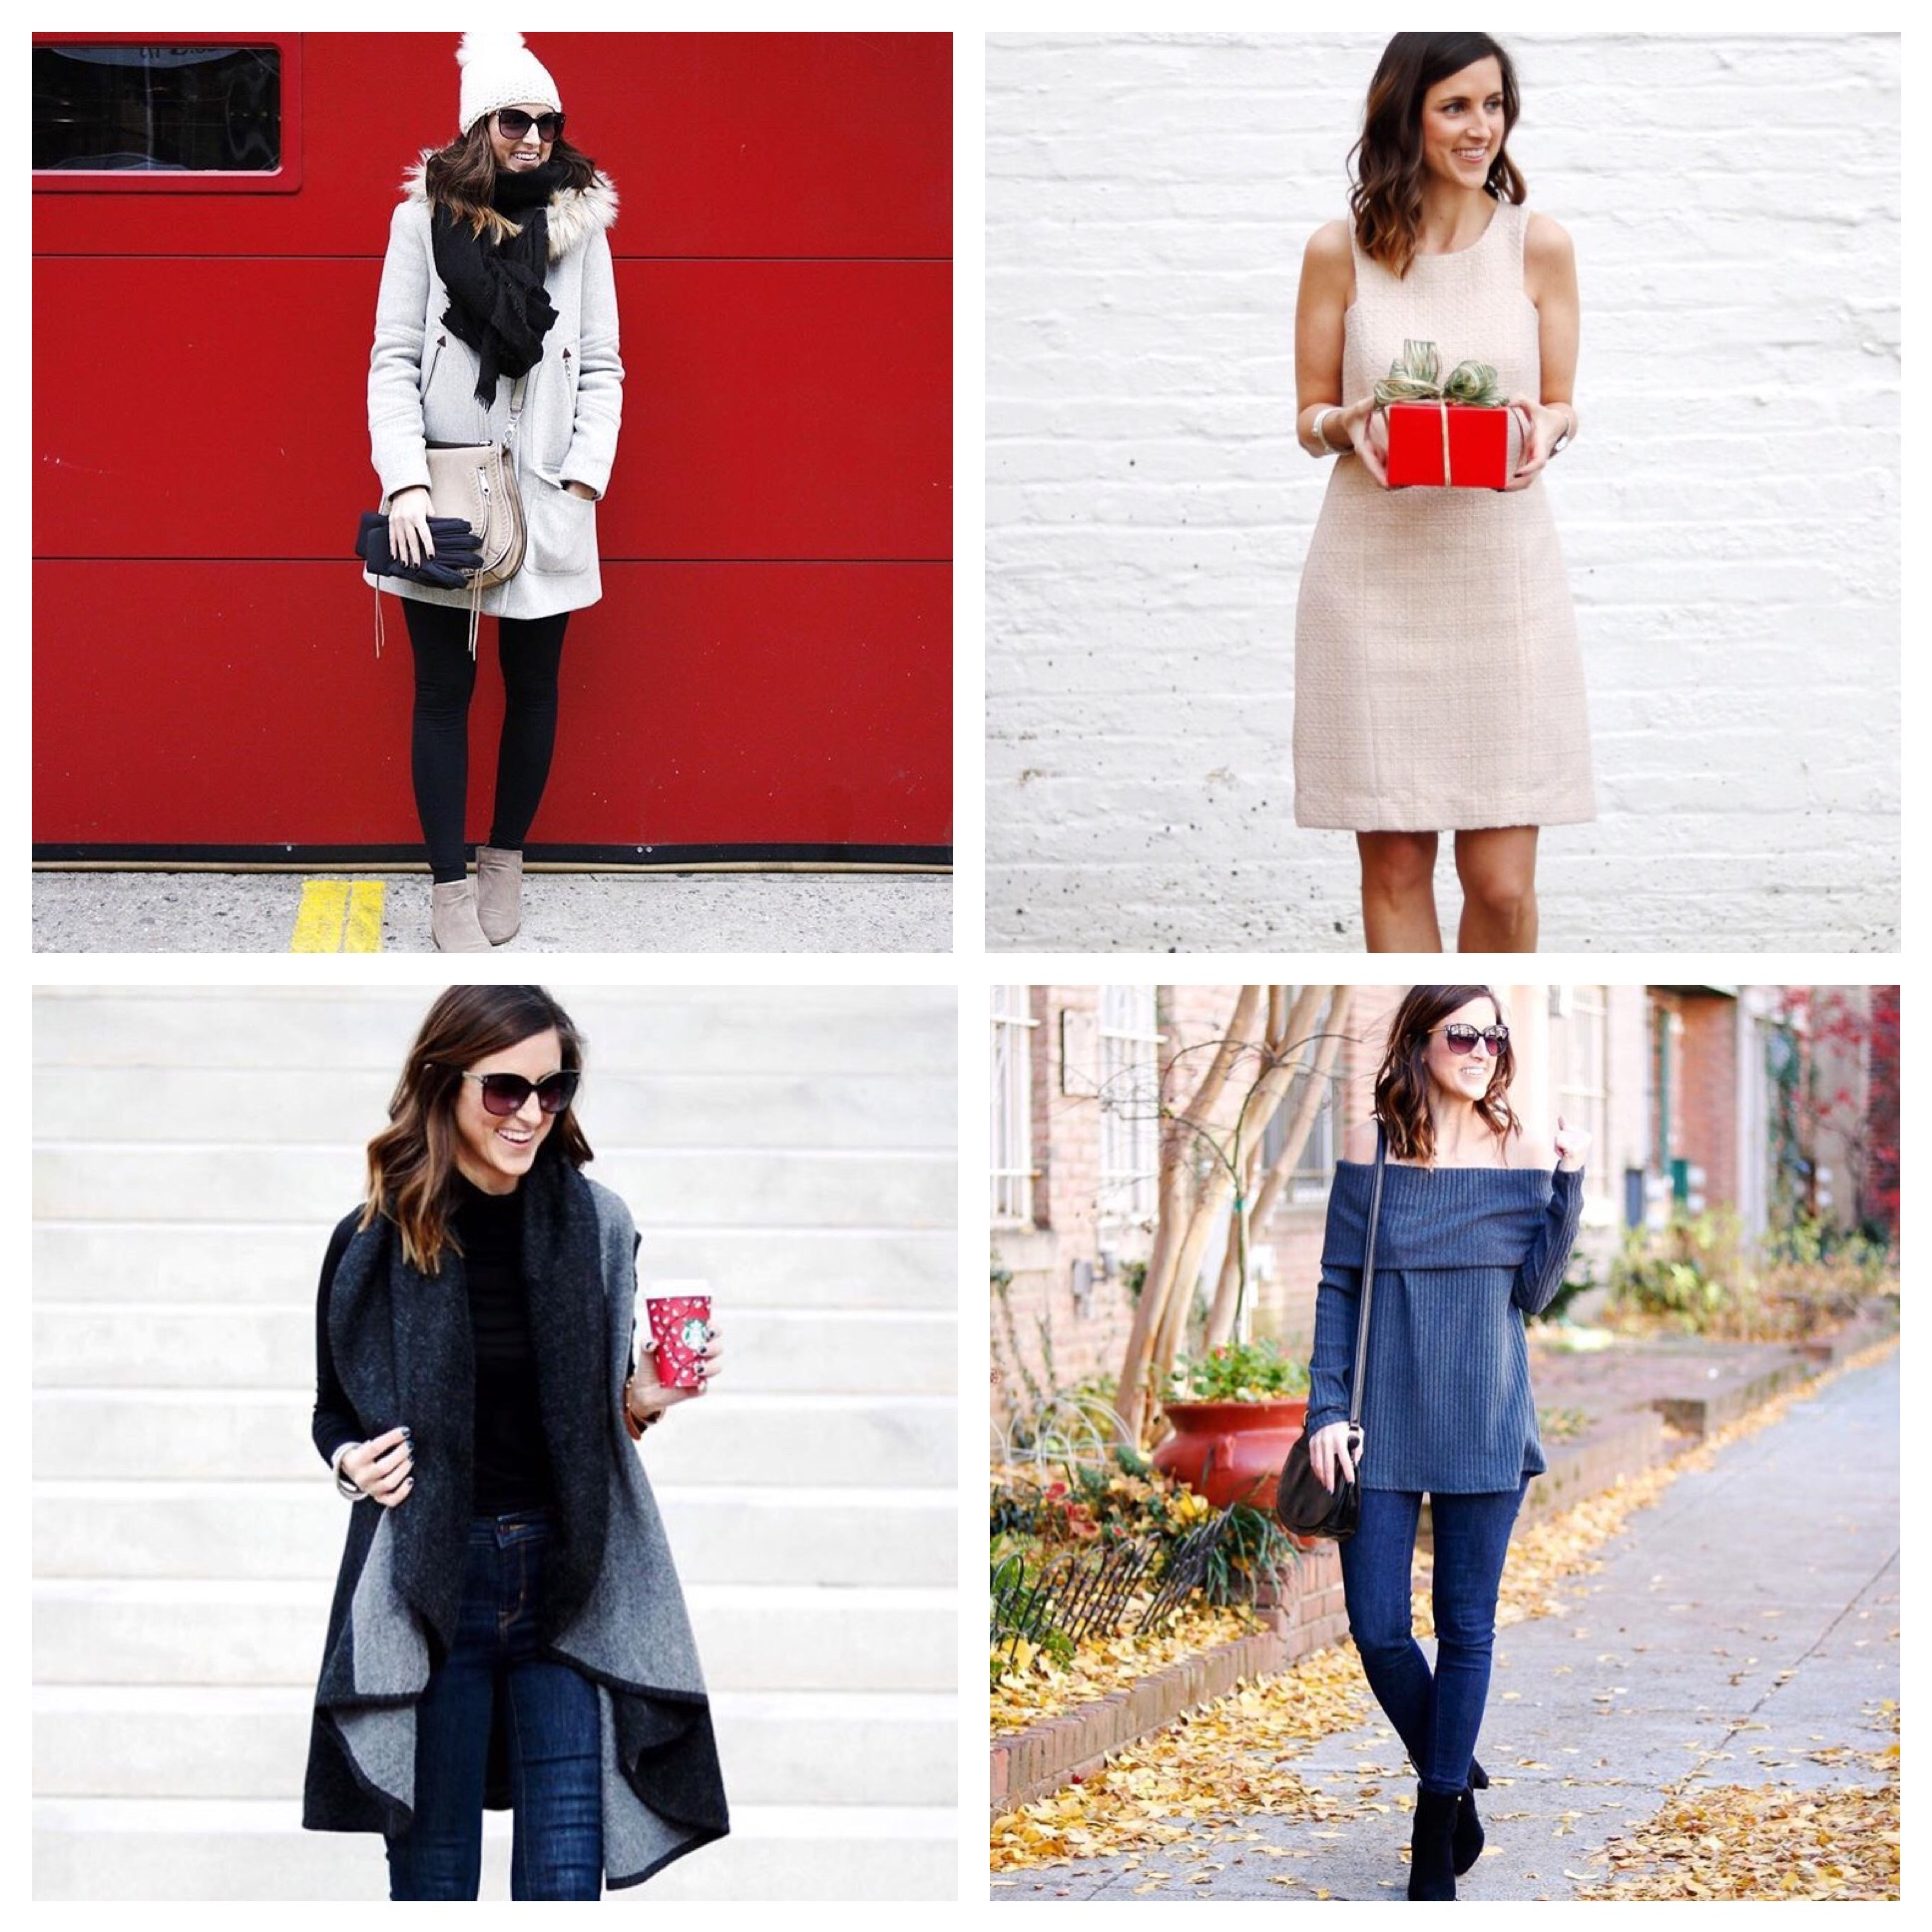 11 Christmas Outfit Ideas You'll Love